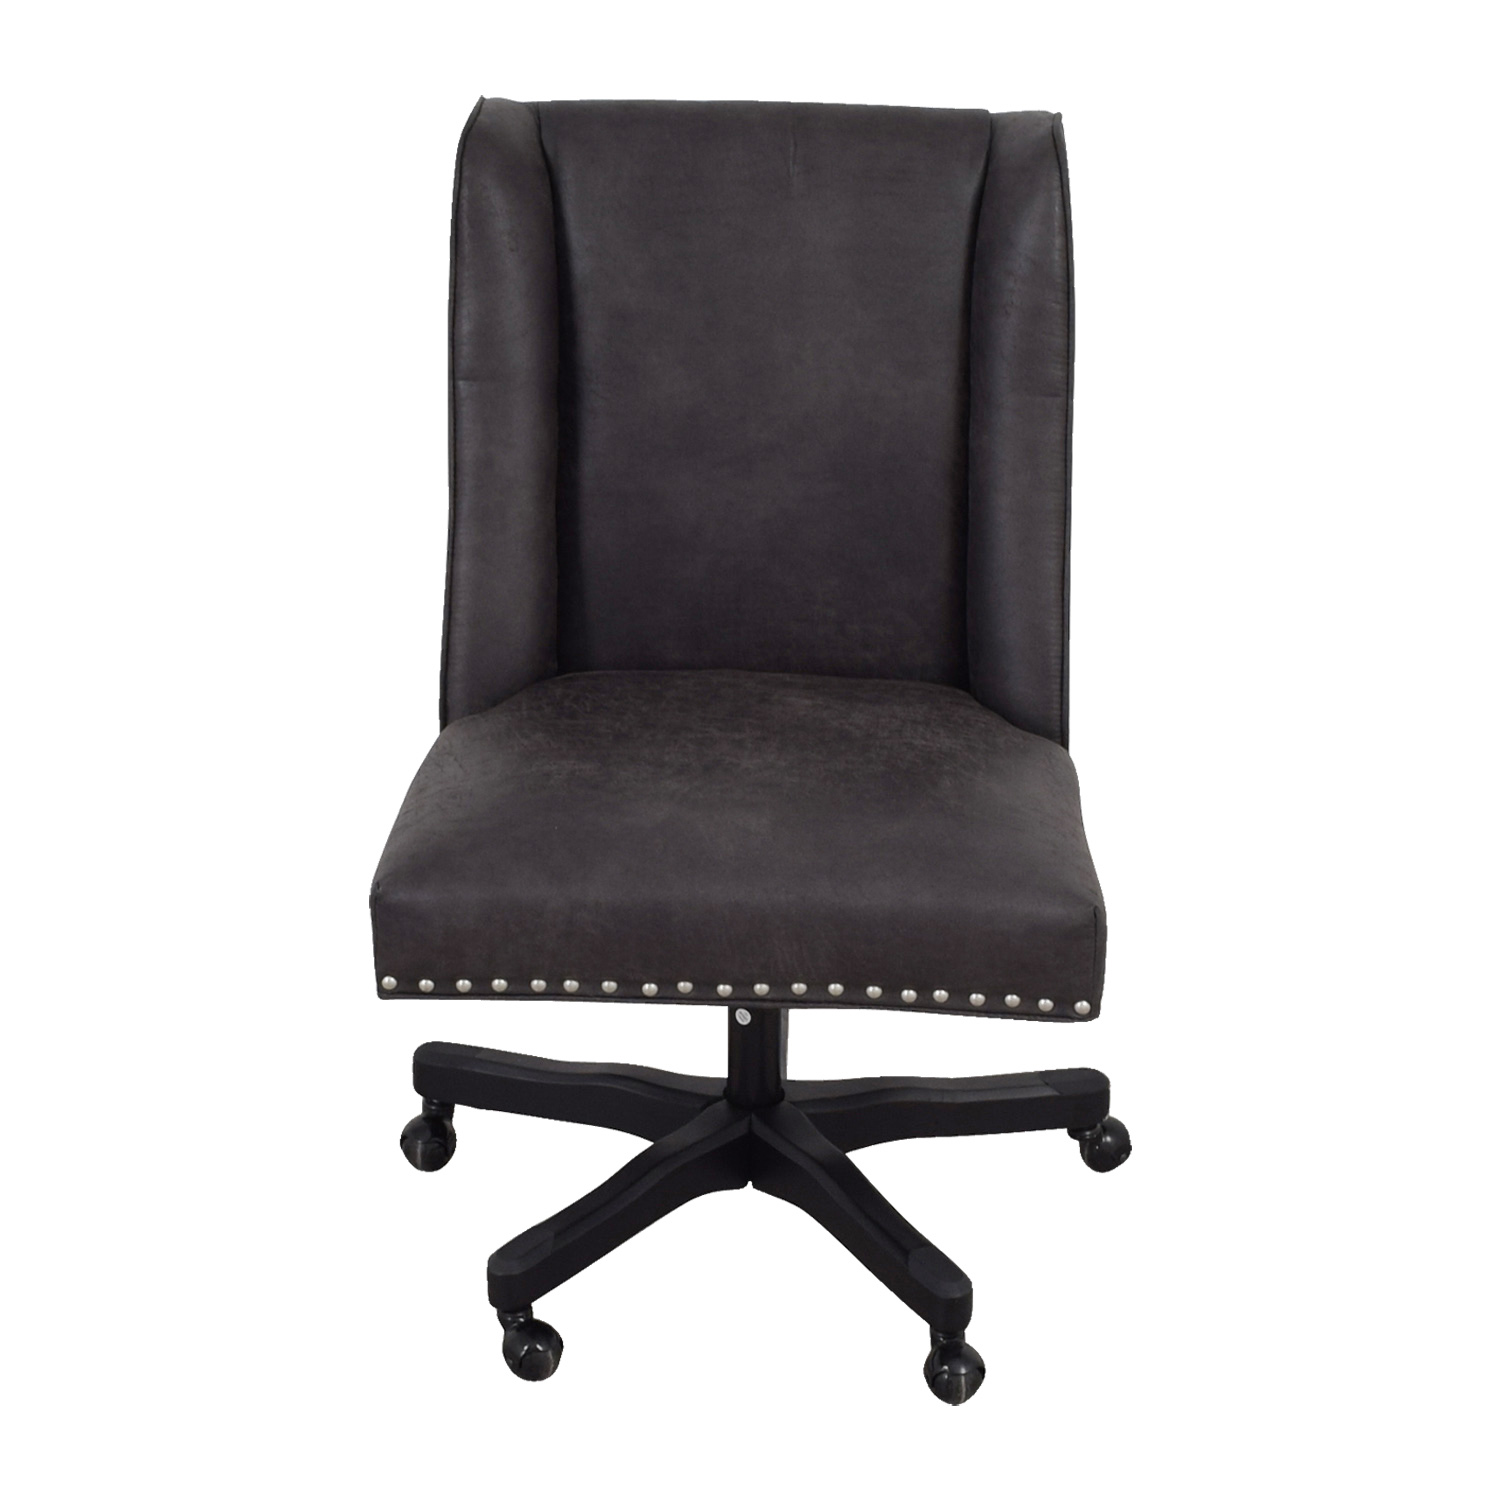 Wayfair Wayfair Grey Executive Chair / Chairs